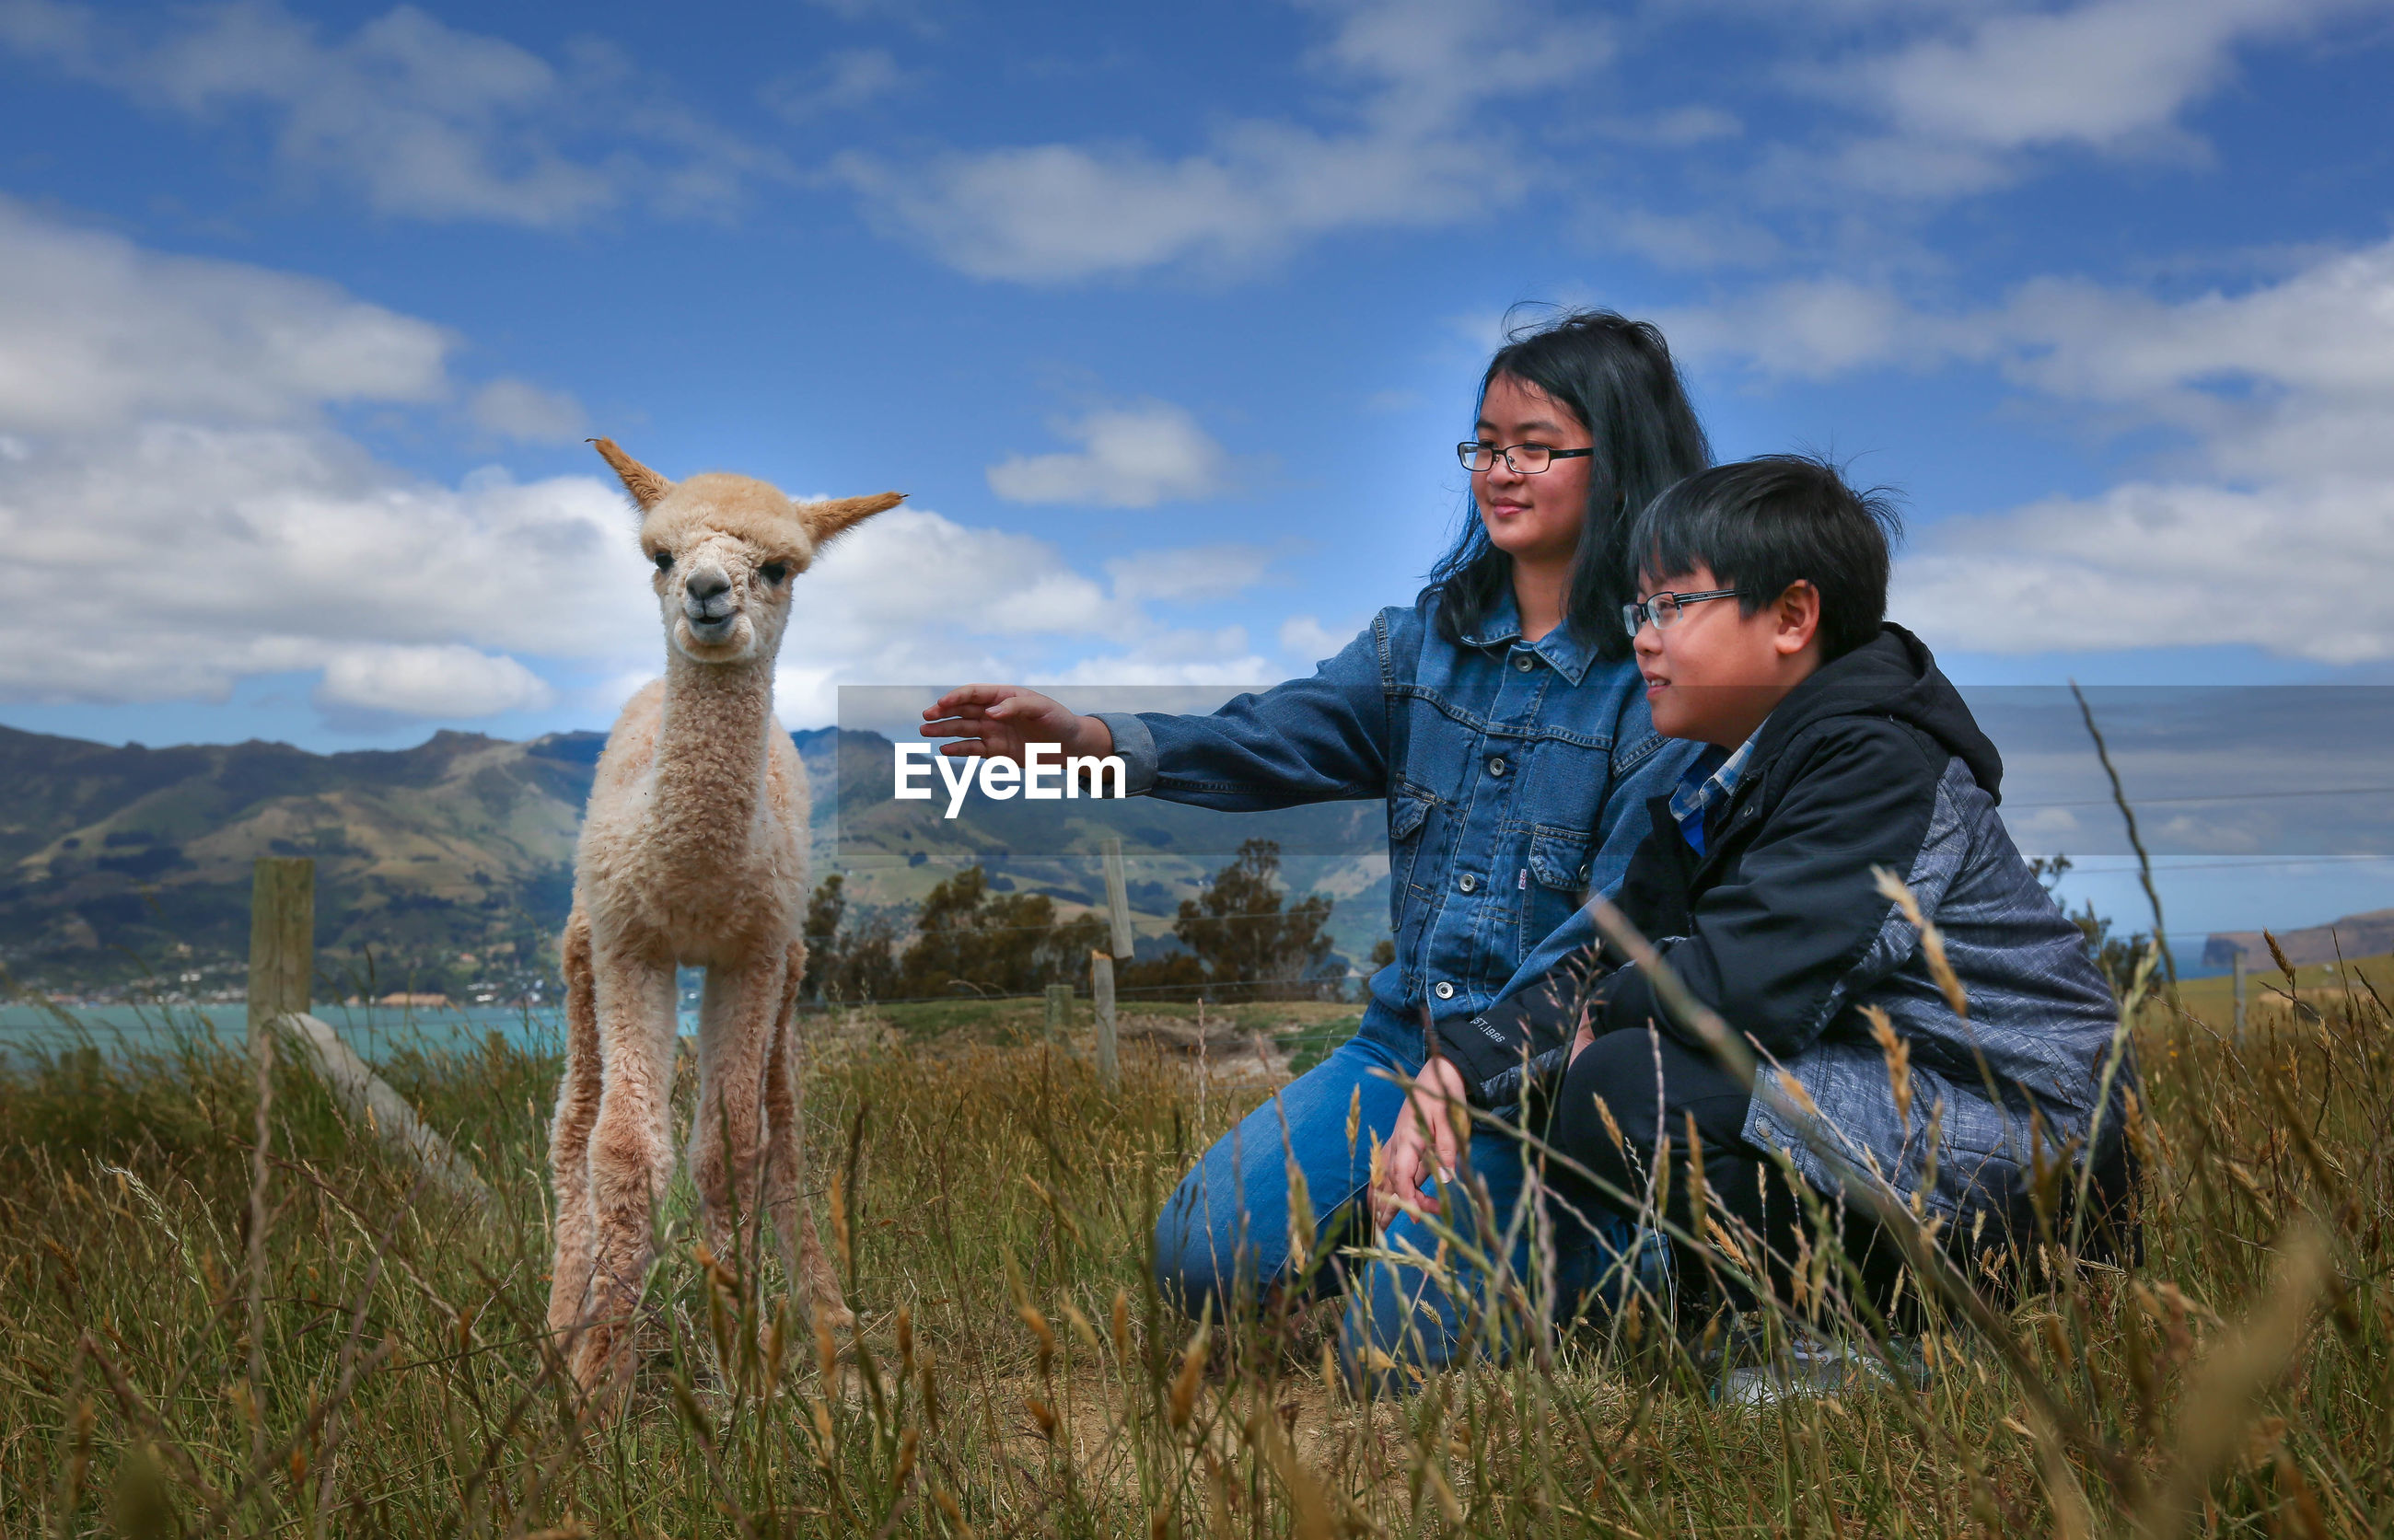 Siblings looking at alpaca on grassy field against sky